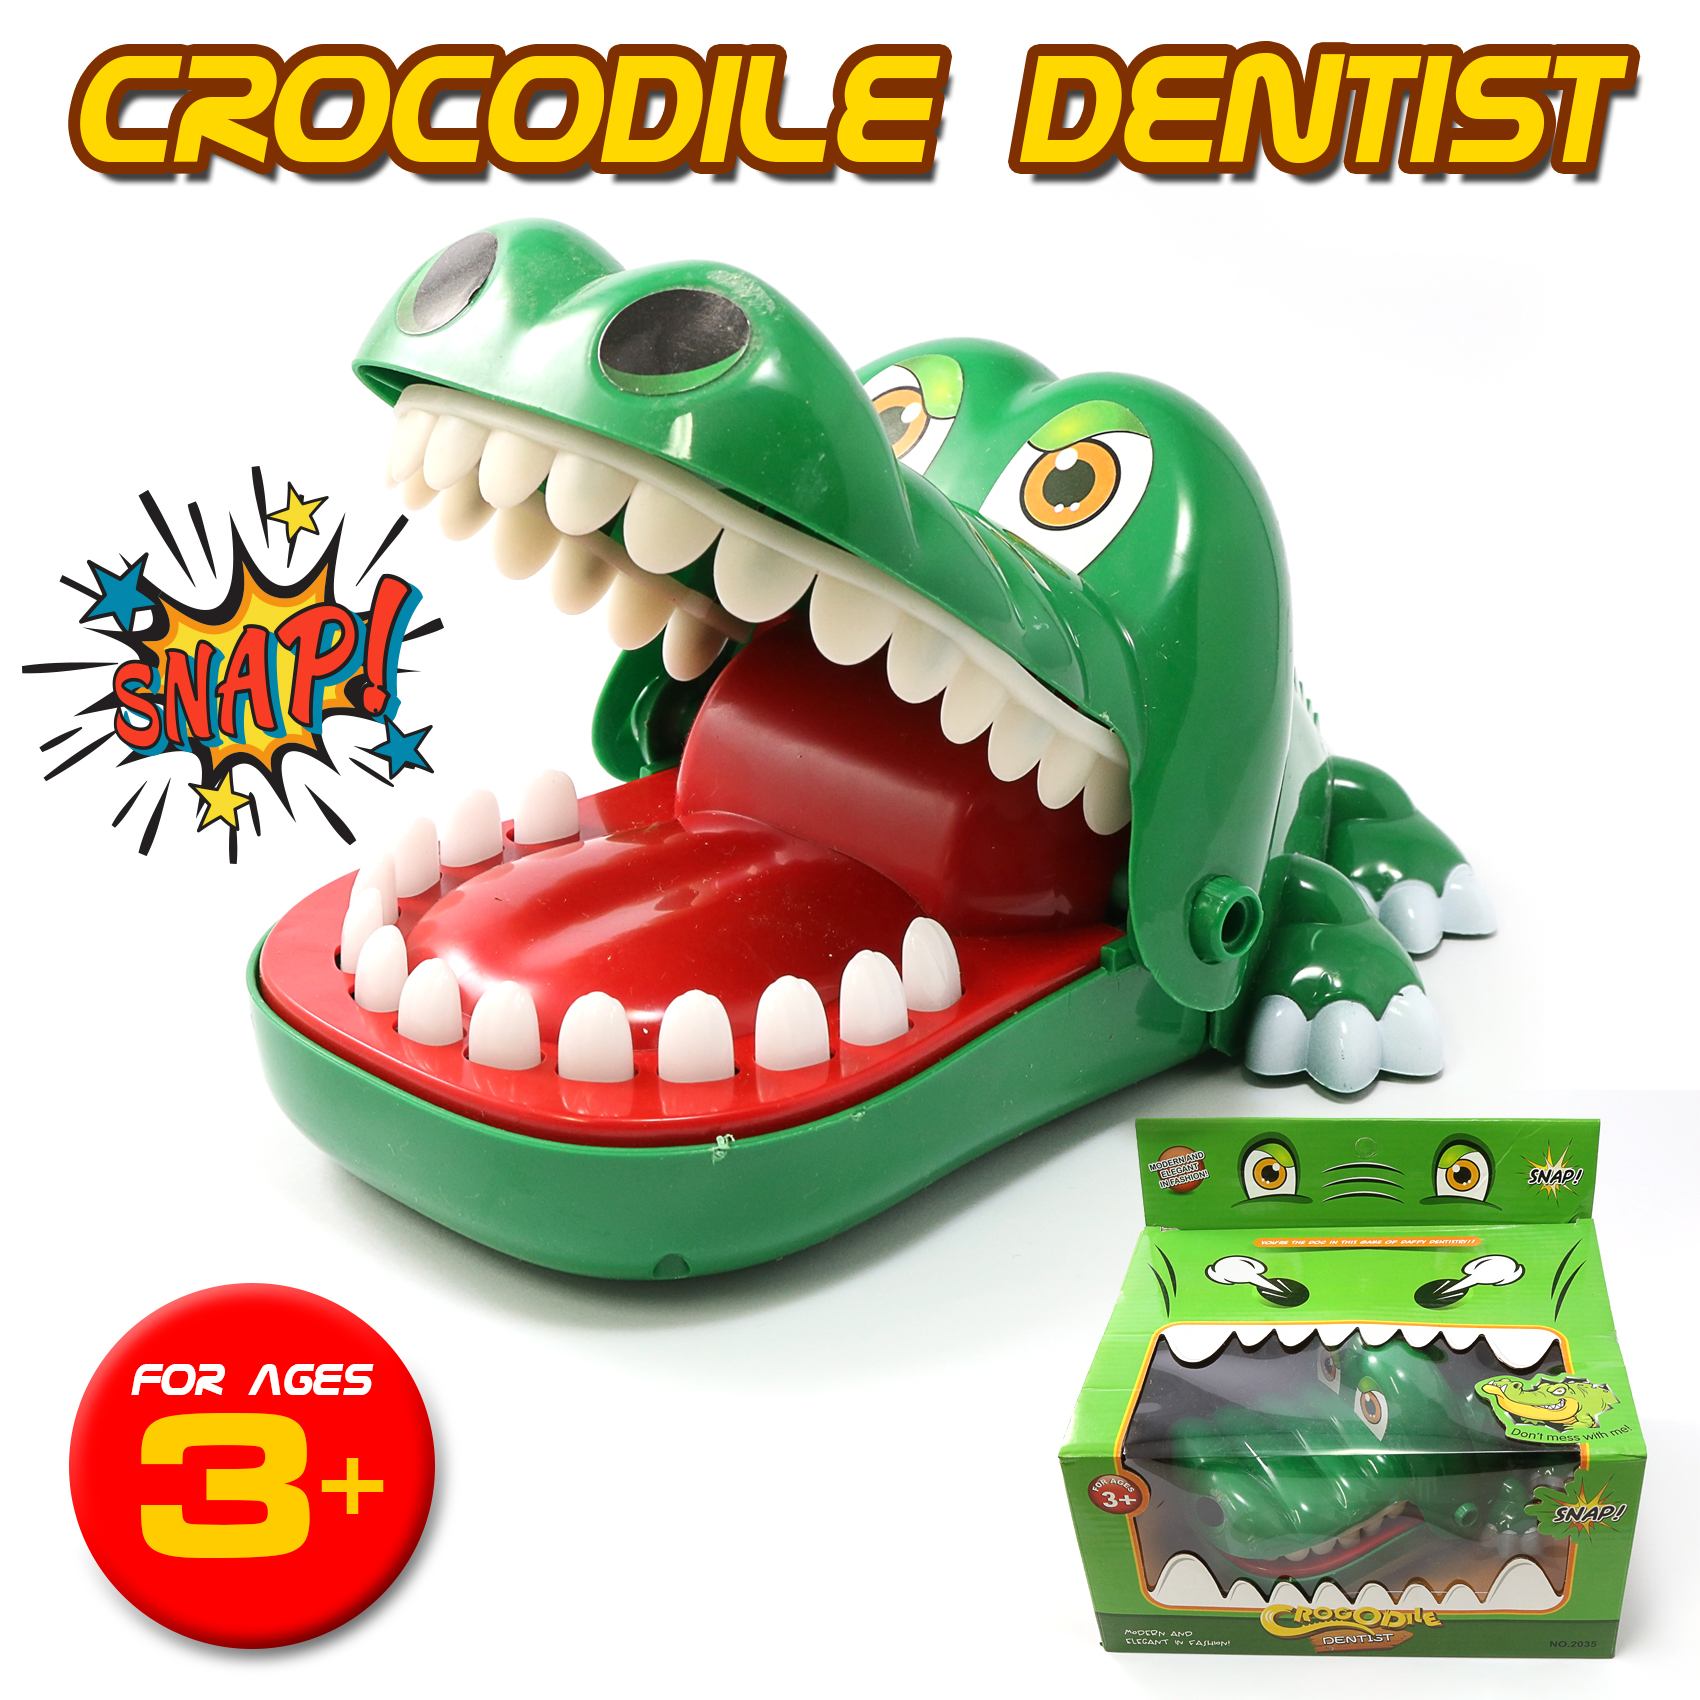 Crocodile Dentist Biting Mouth Mini Game - Green